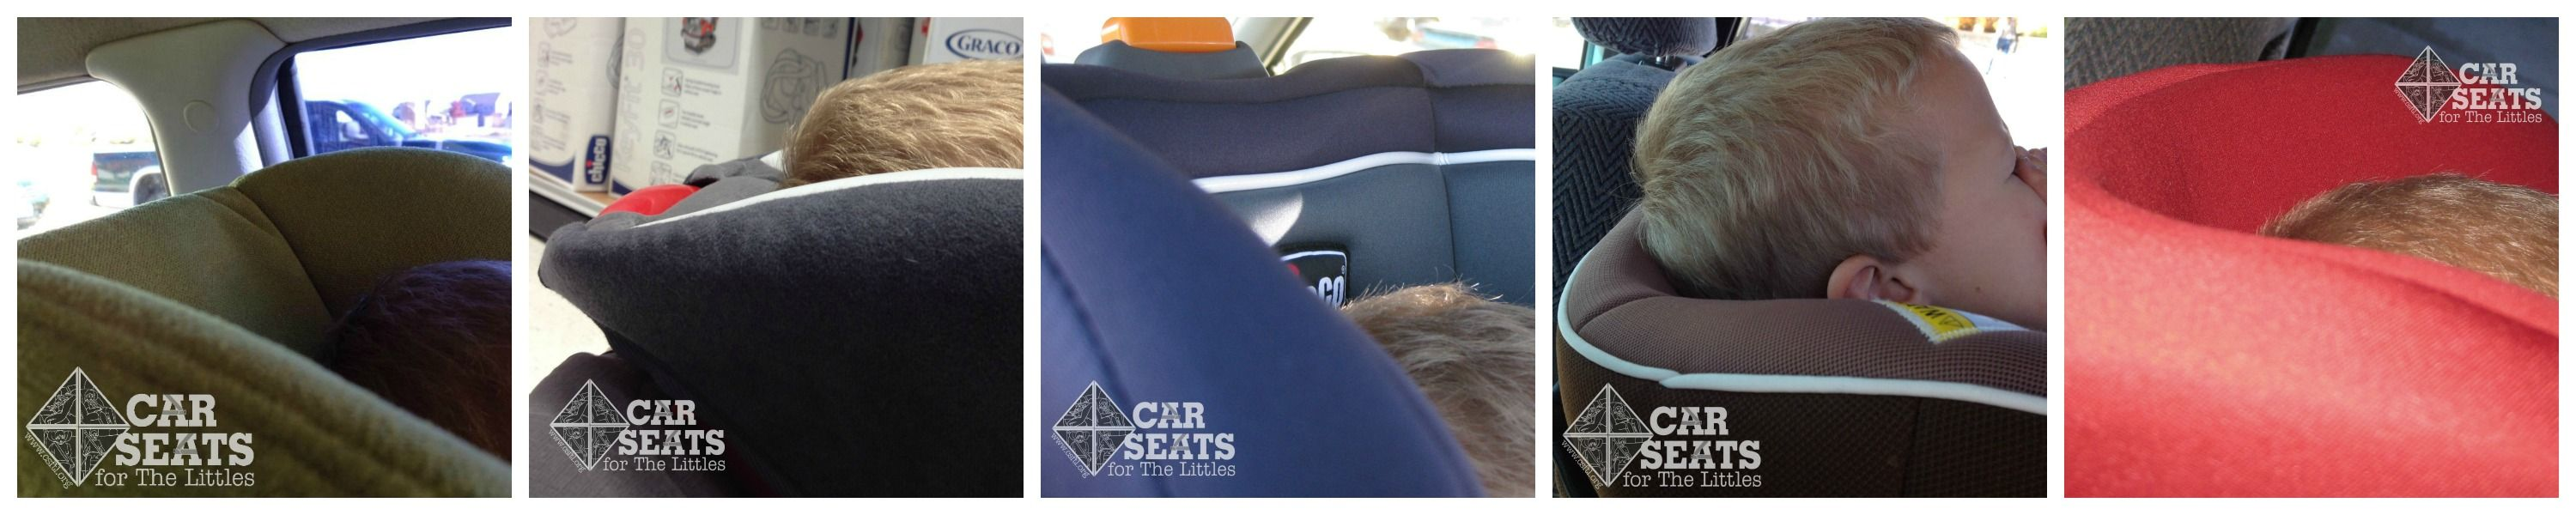 How Much Headroom A Height Comparison Of Rear Facing Convertible Car Seats